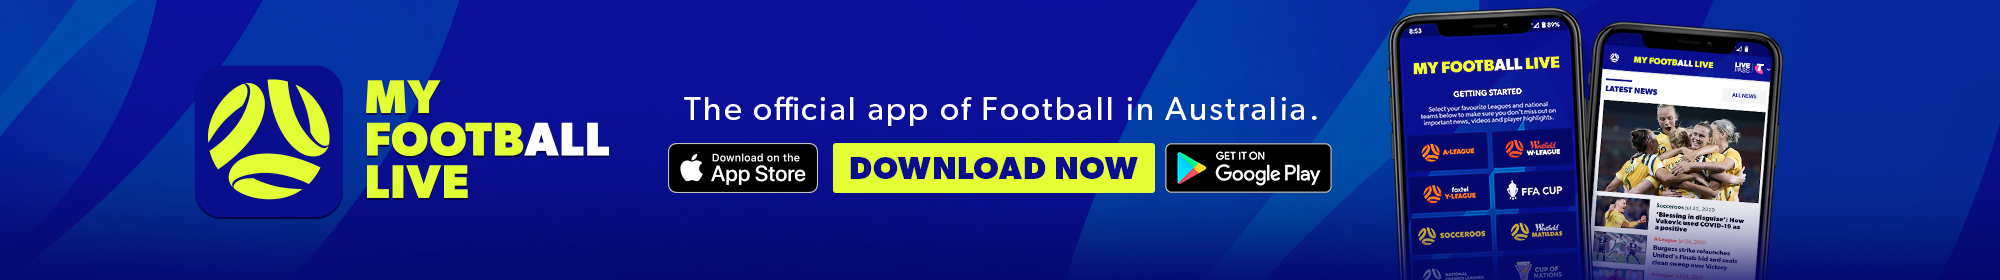 My Football Live app banner thin